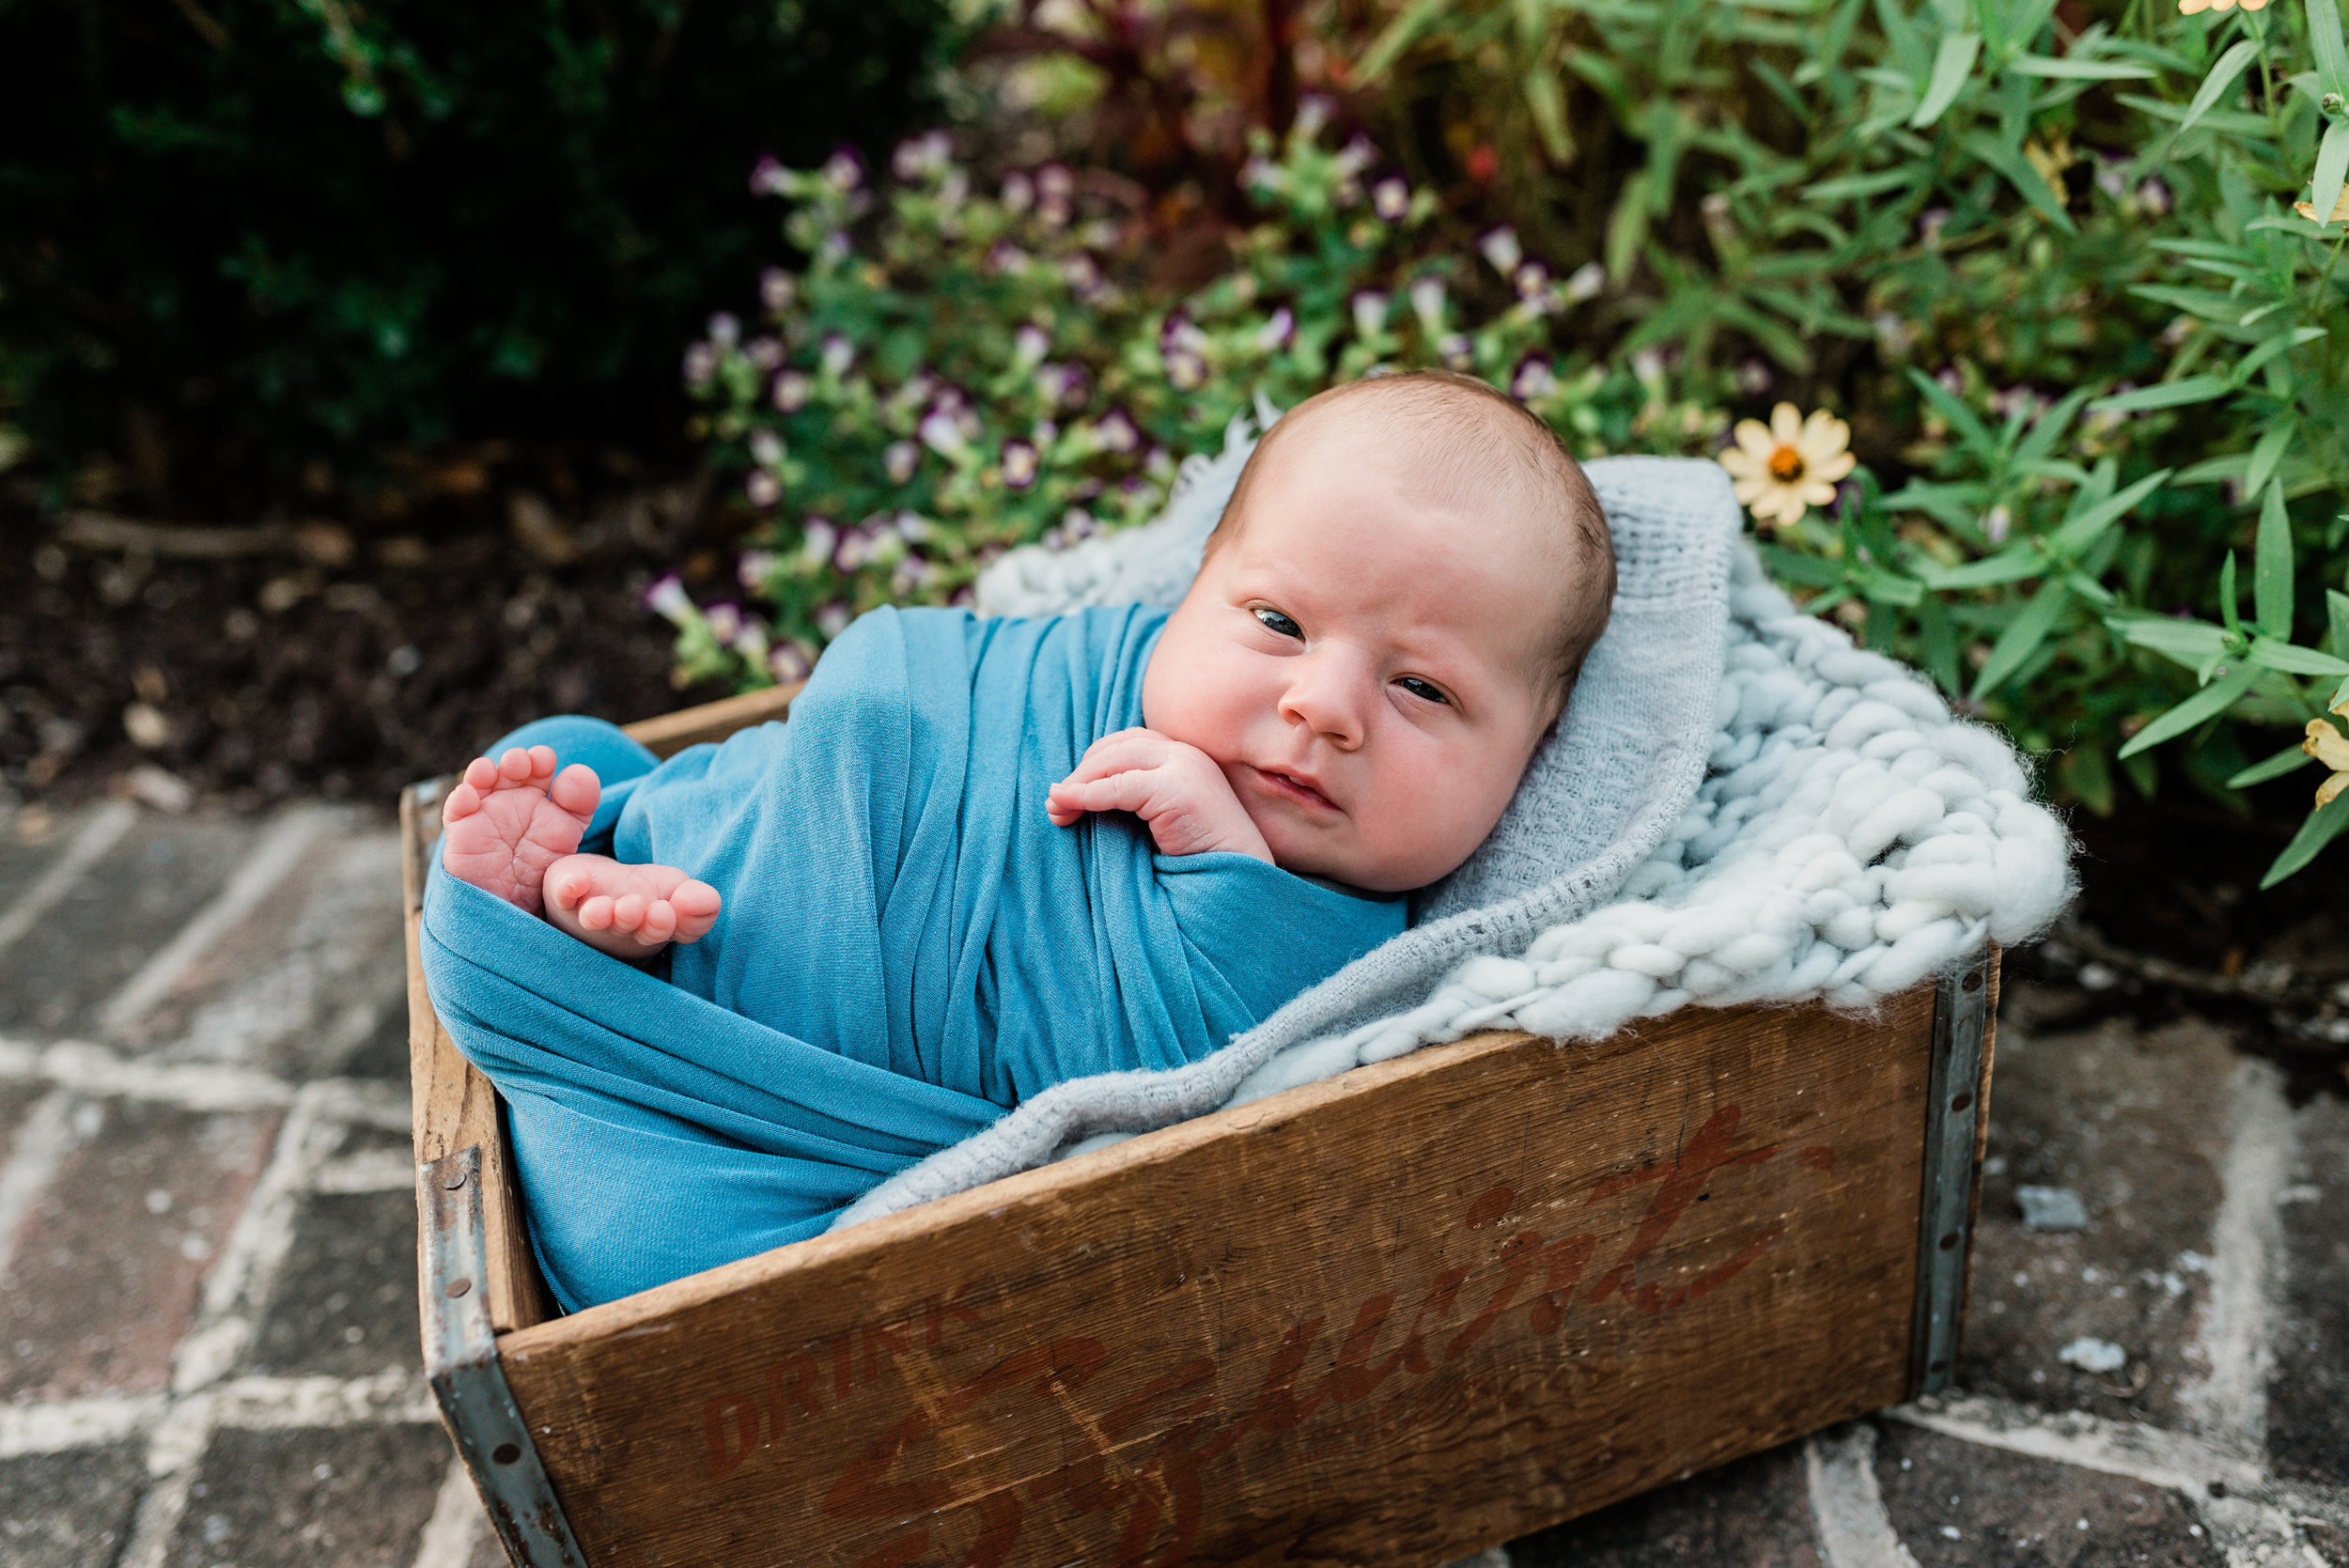 Charleston-Outdoor-Newborn-Photographer-Following-Seas-Photography-6080 copy.jpg